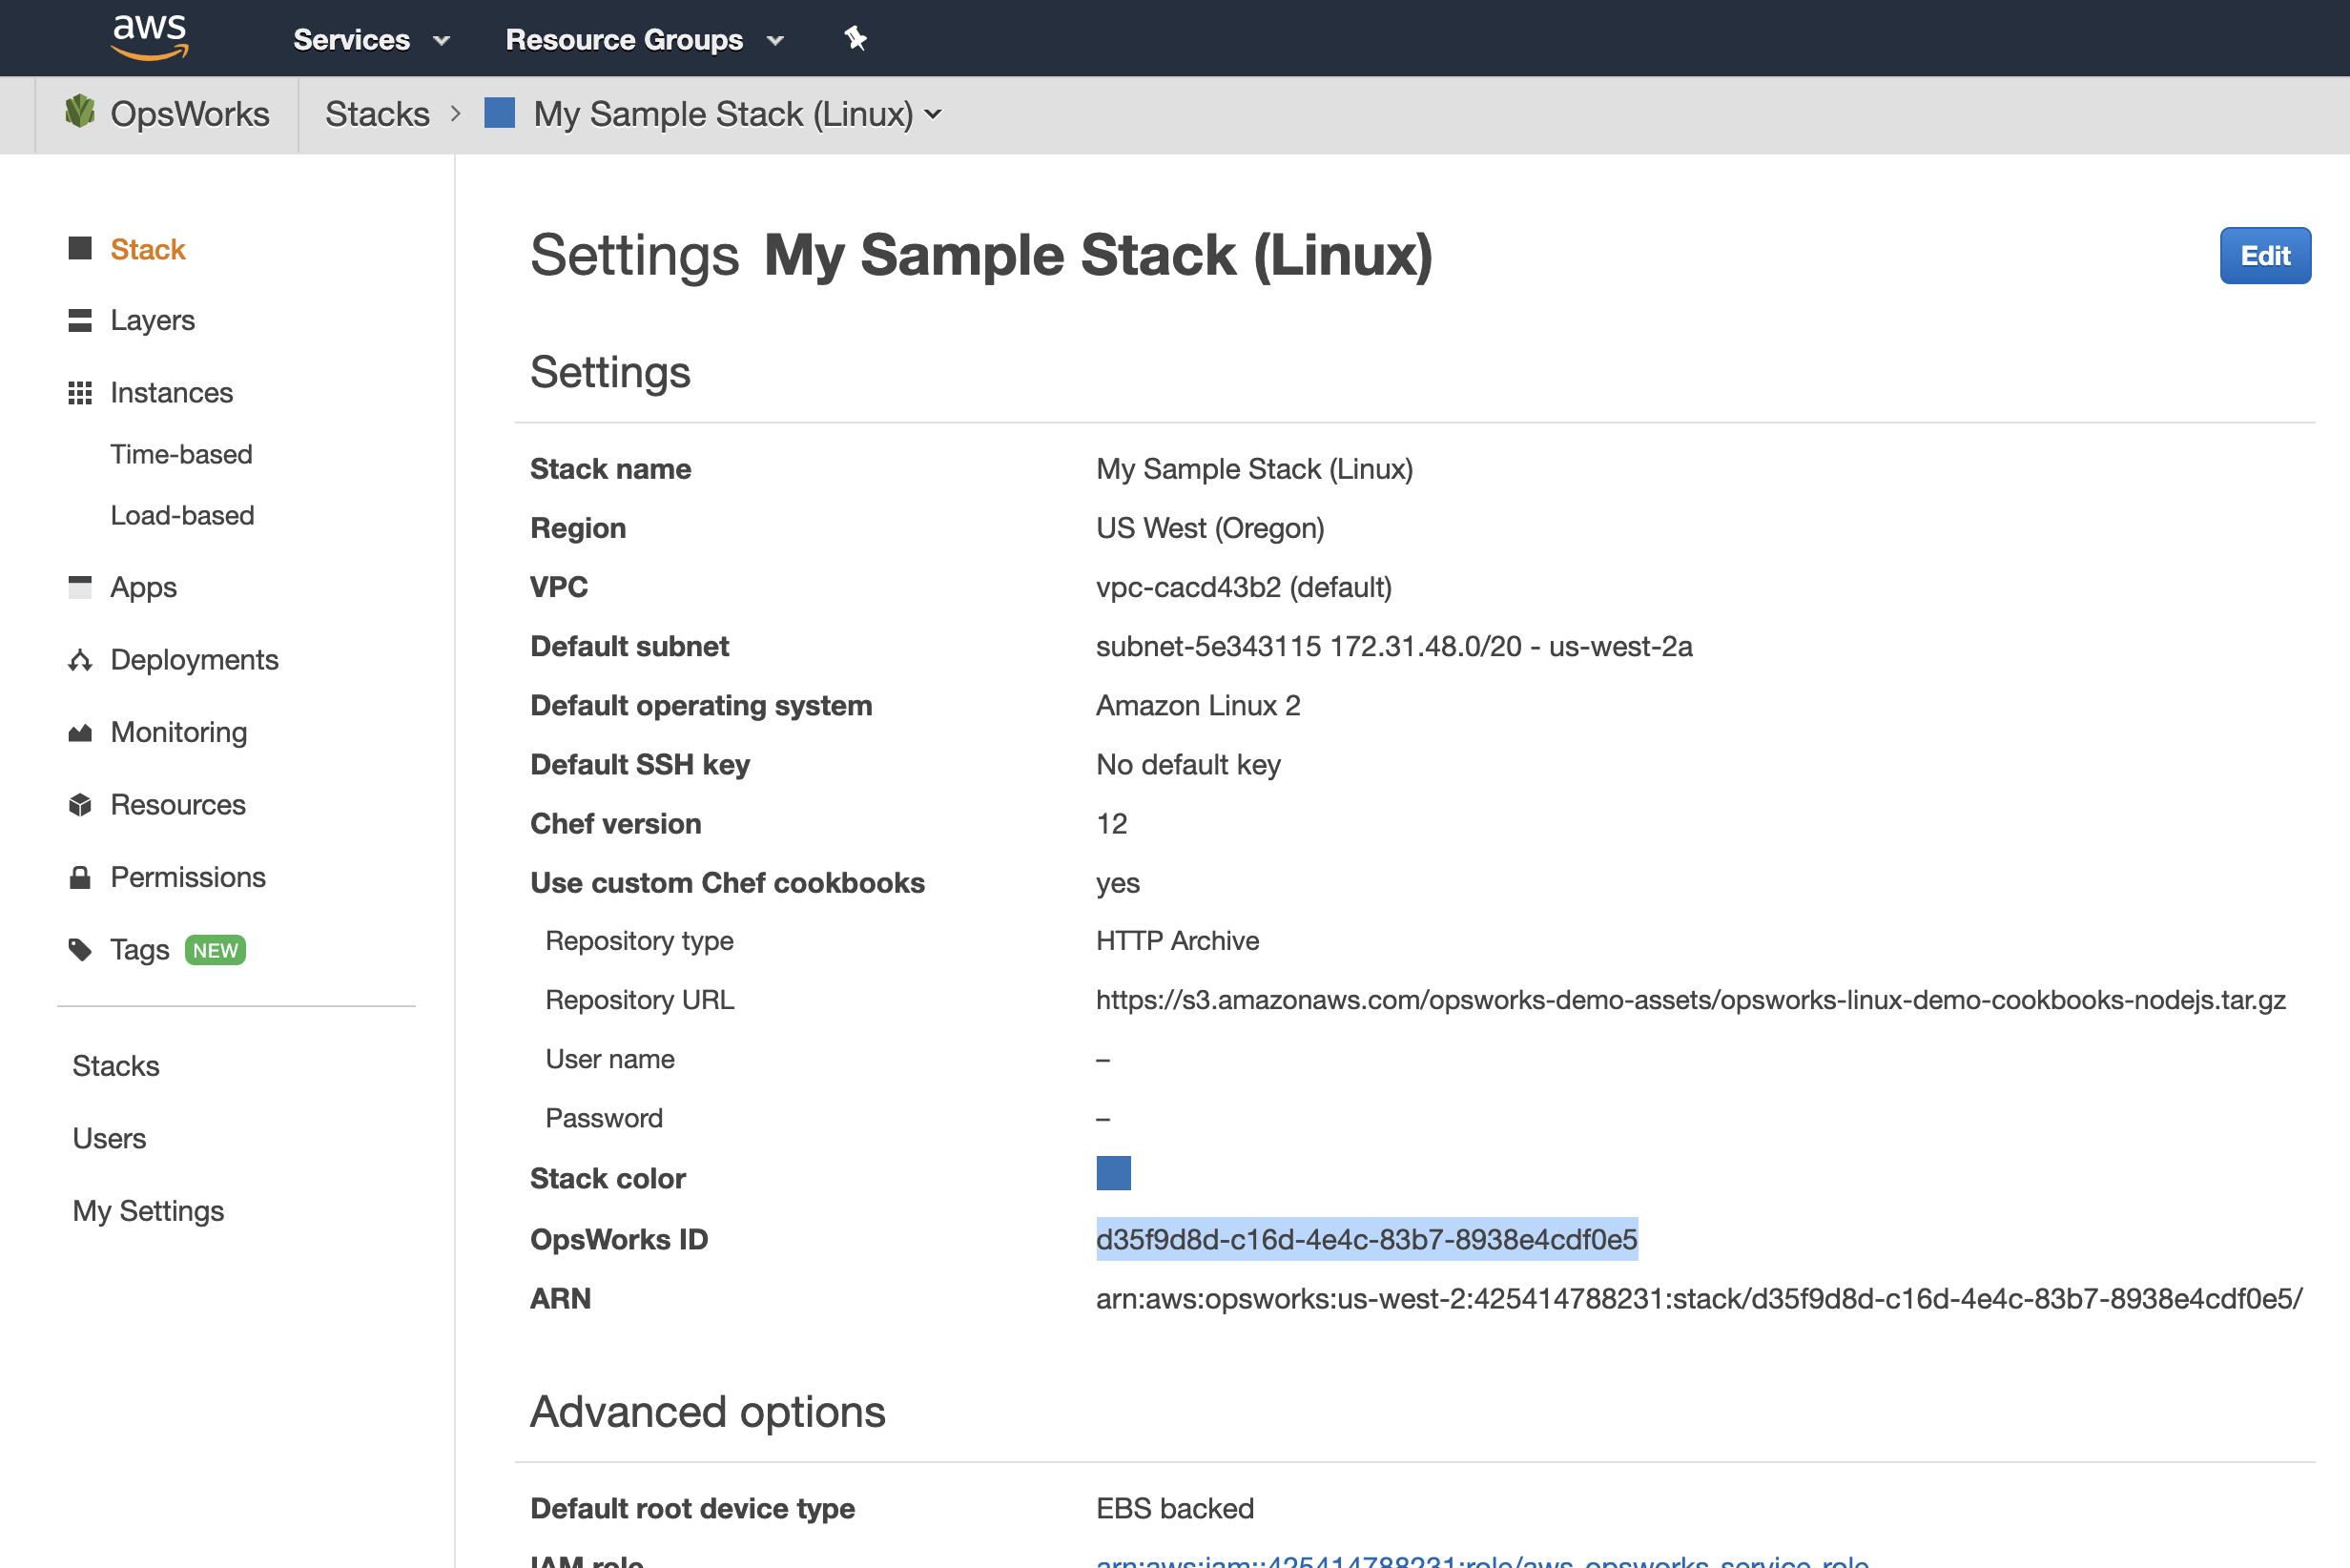 AWS Opsworks Stack Settings: OpsWorks ID describes the stack_id